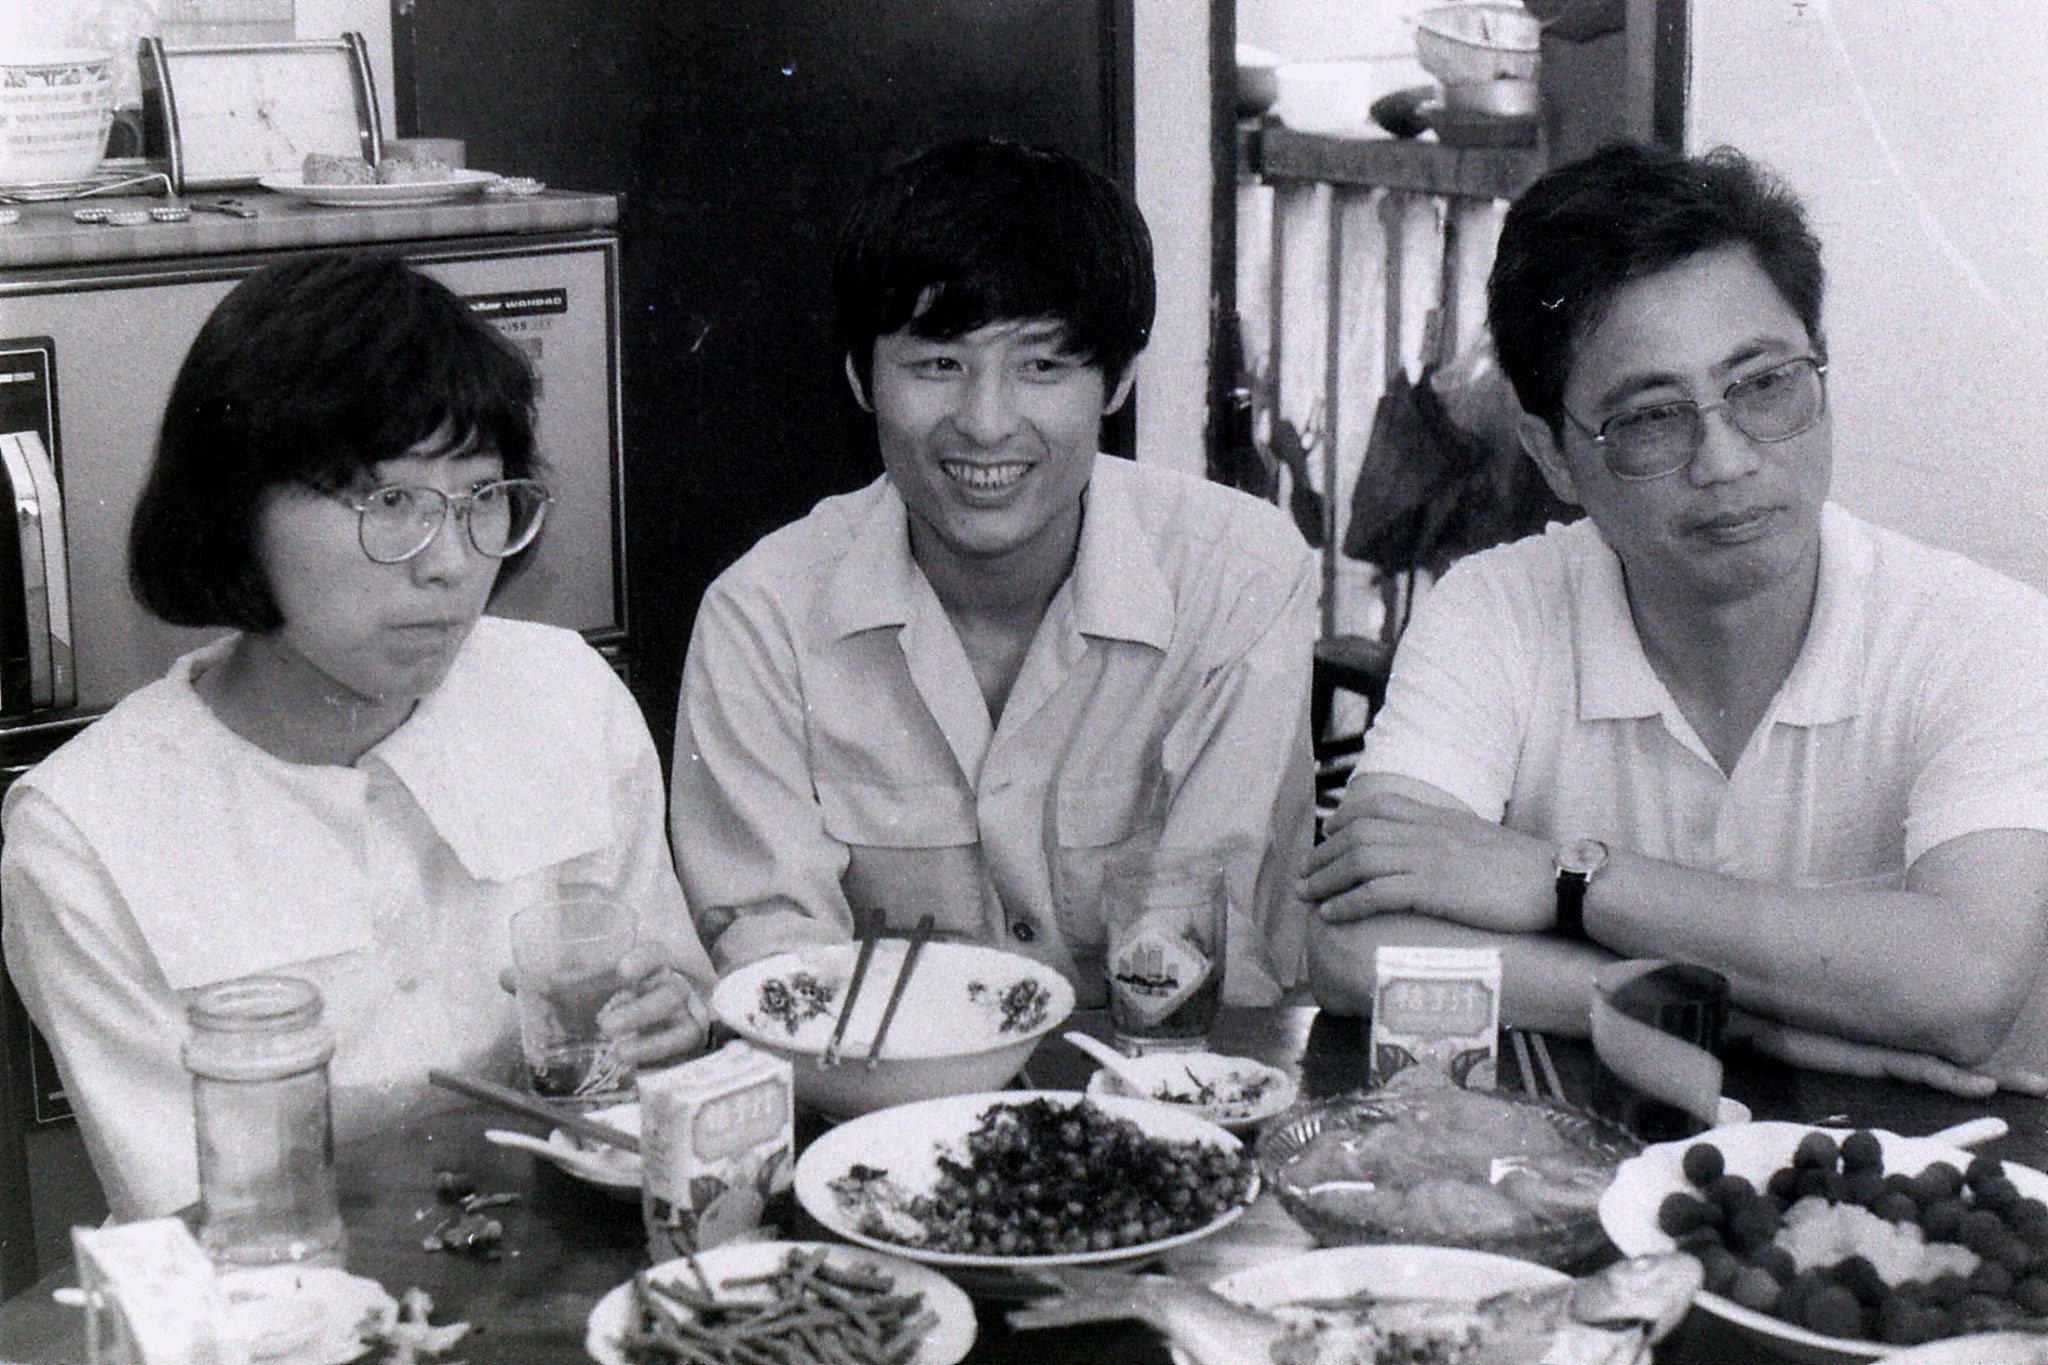 3/7/1989: 13: Shanghai, lunch at Prof. Xu's flat